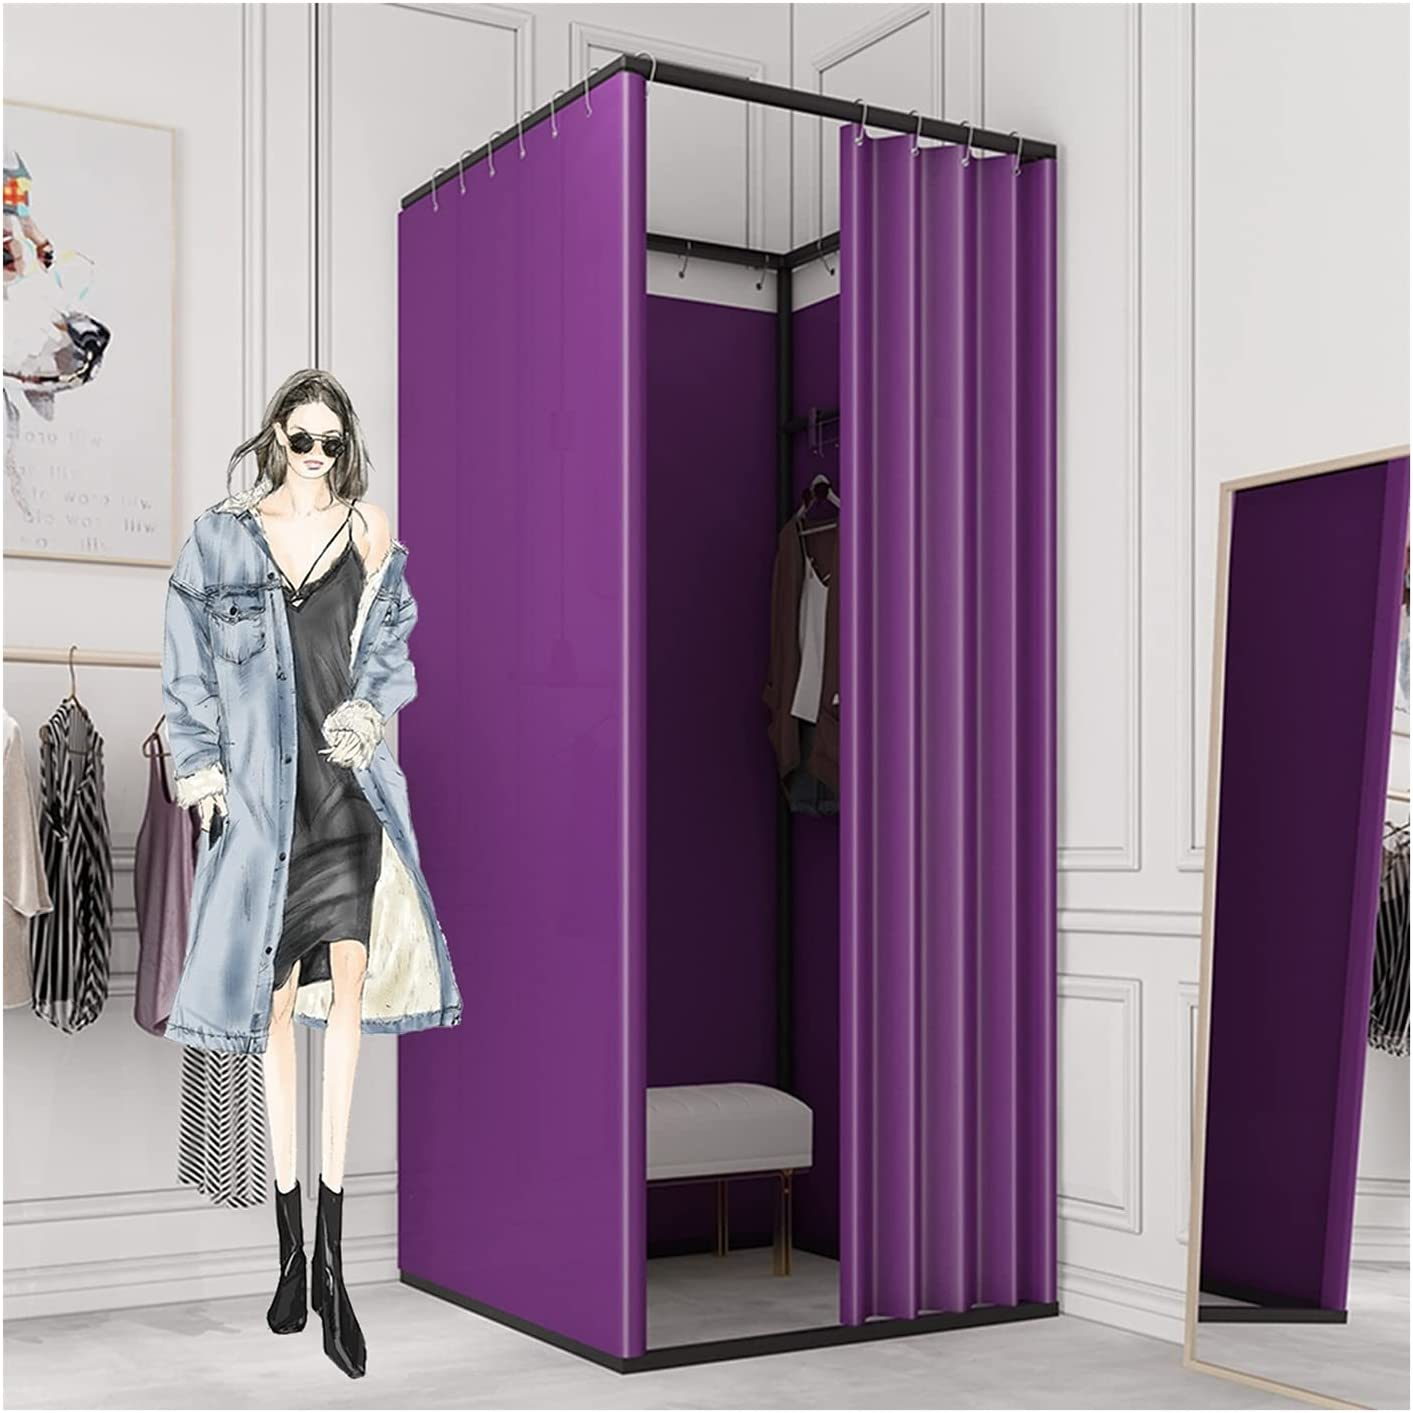 LM-Coat rack lowest price XINGLL Clothing Store Room 70% OFF Outlet Privacy Fitting Po Tent